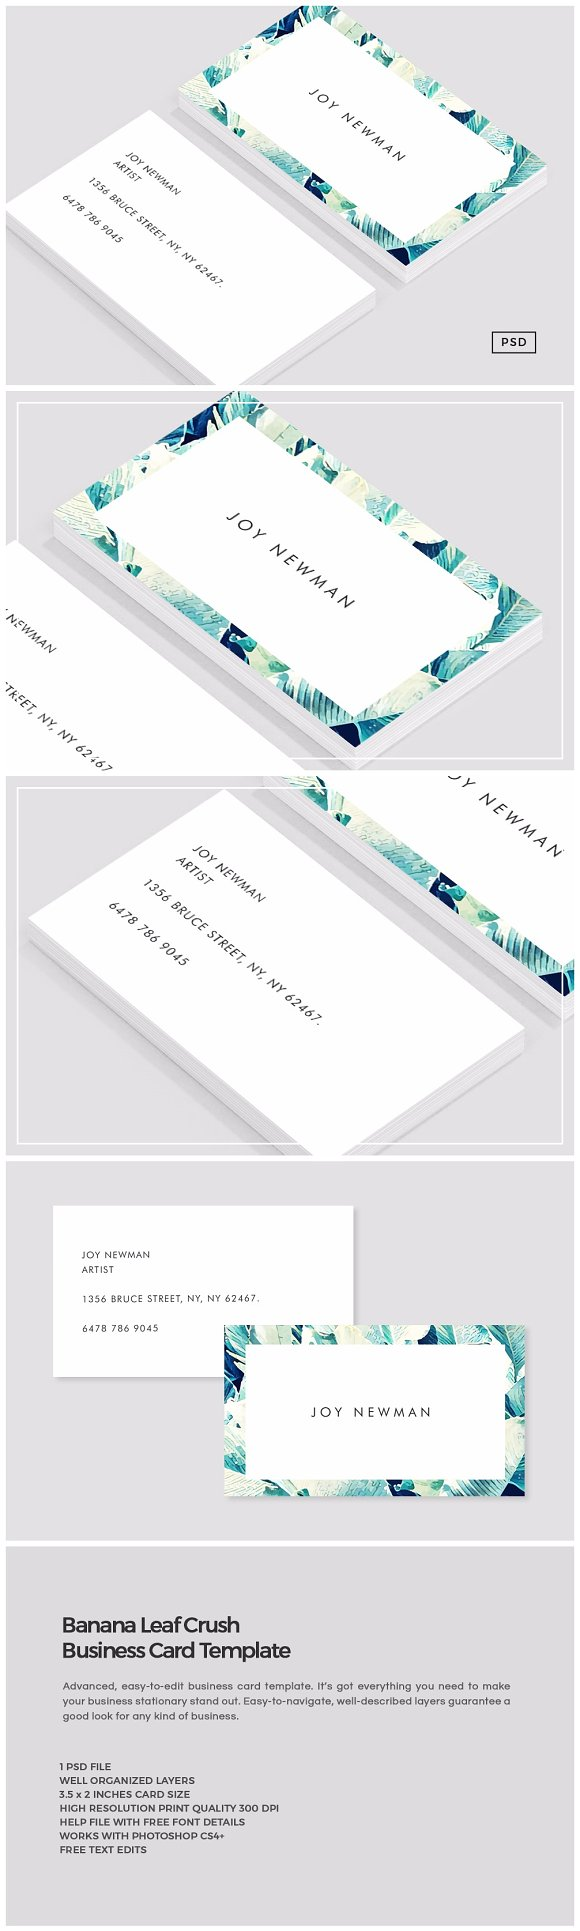 Banana Leaf Crush Business Card ~ Business Card Templates ...